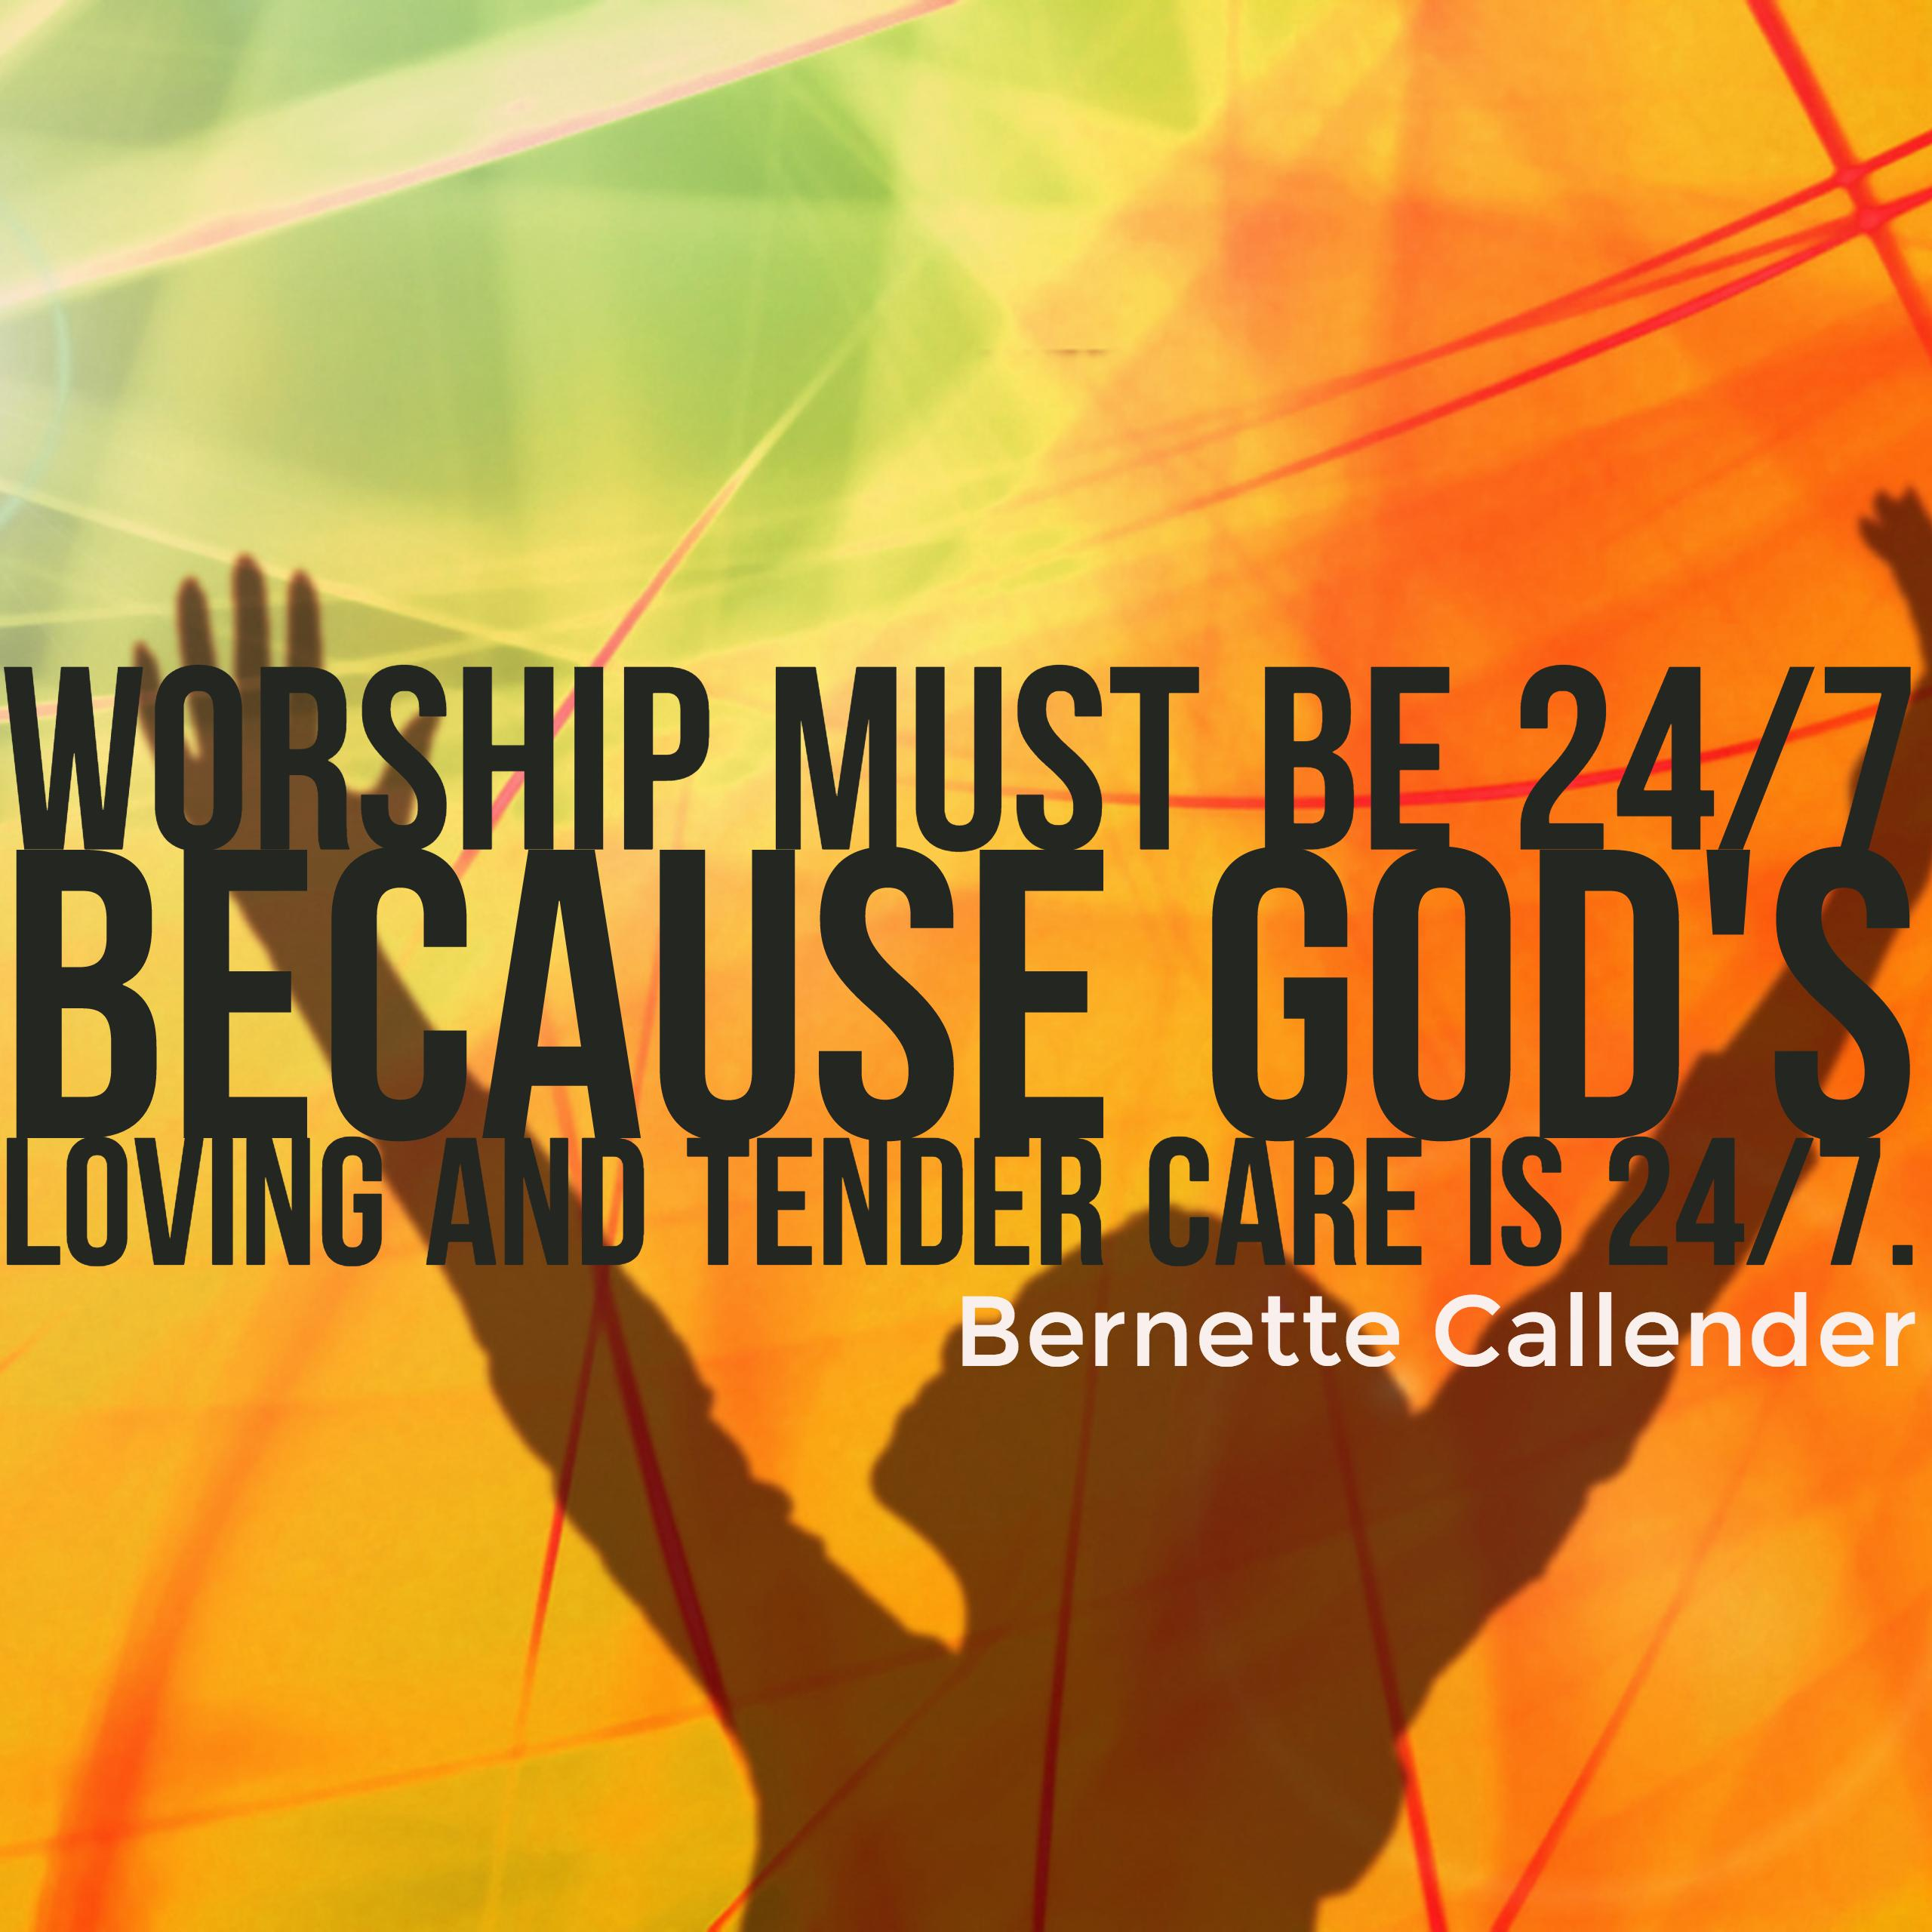 Worship Quotes Worship Is 247 Because God's Love Is 247